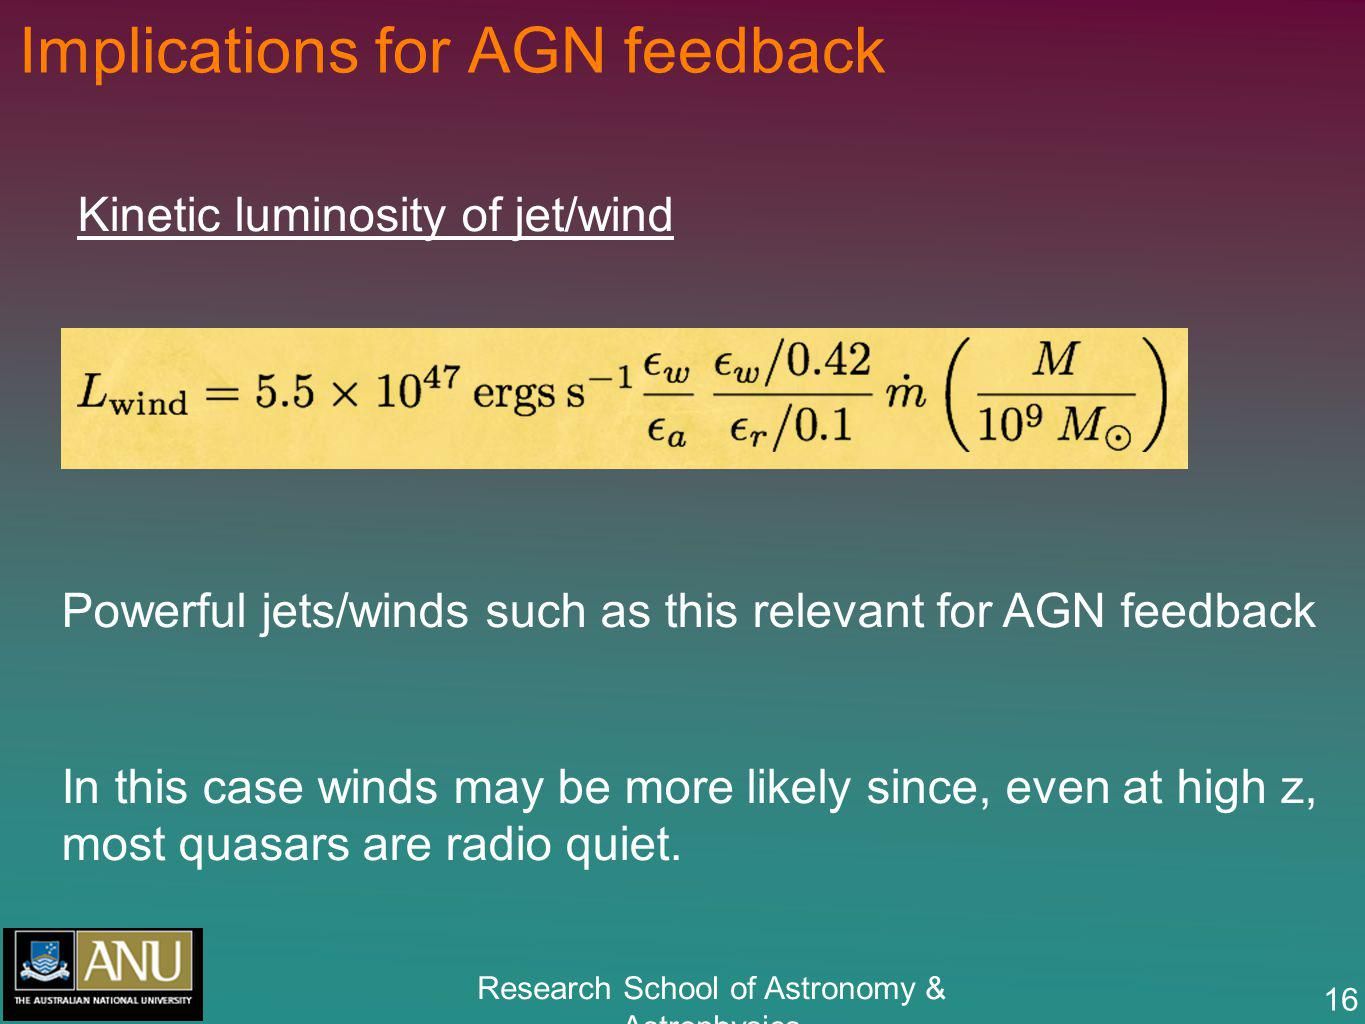 Research School of Astronomy & Astrophysics 16 Implications for AGN feedback Kinetic luminosity of jet/wind Powerful jets/winds such as this relevant